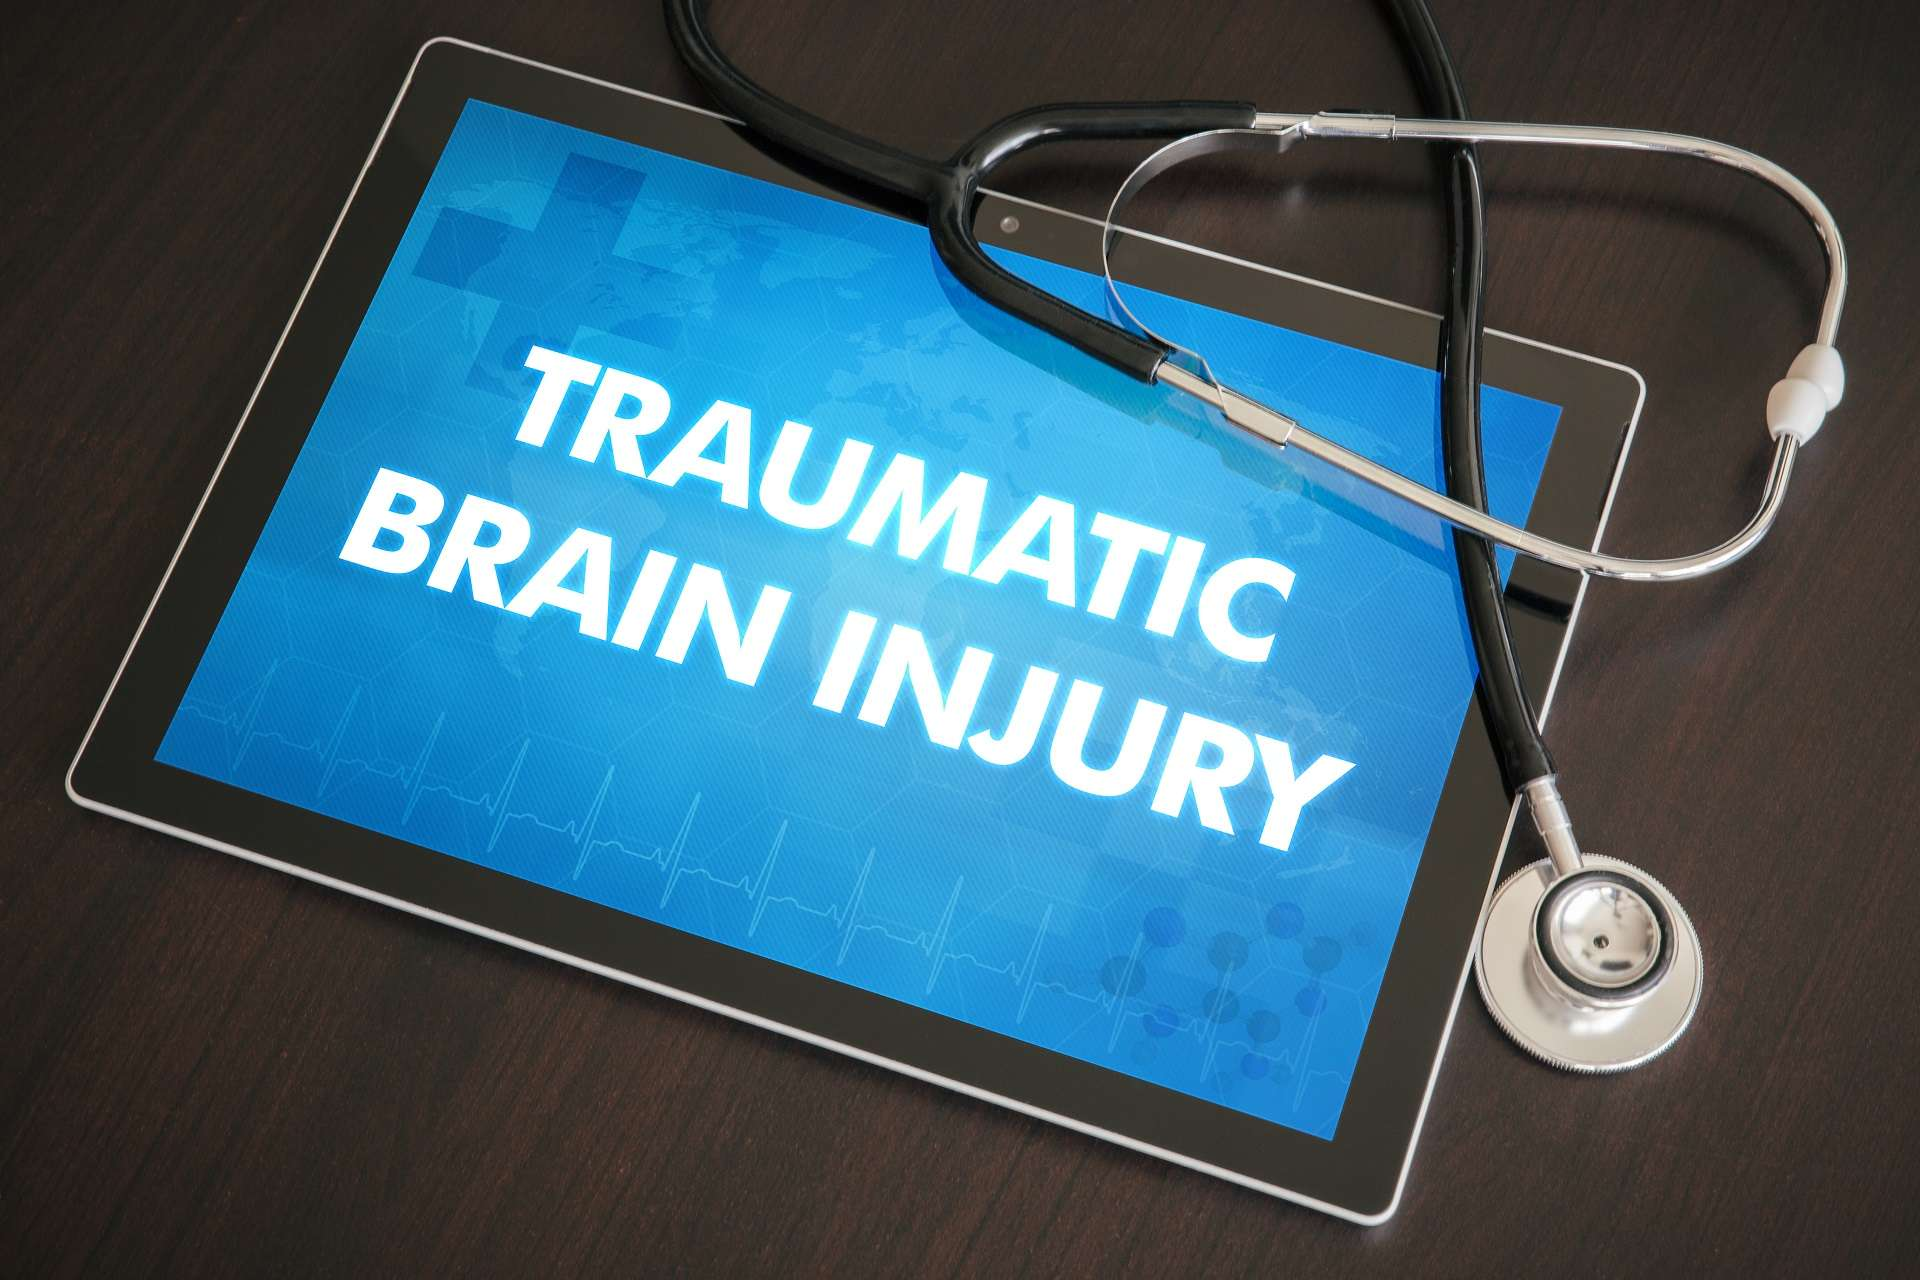 vocational experts in traumatic brain injury